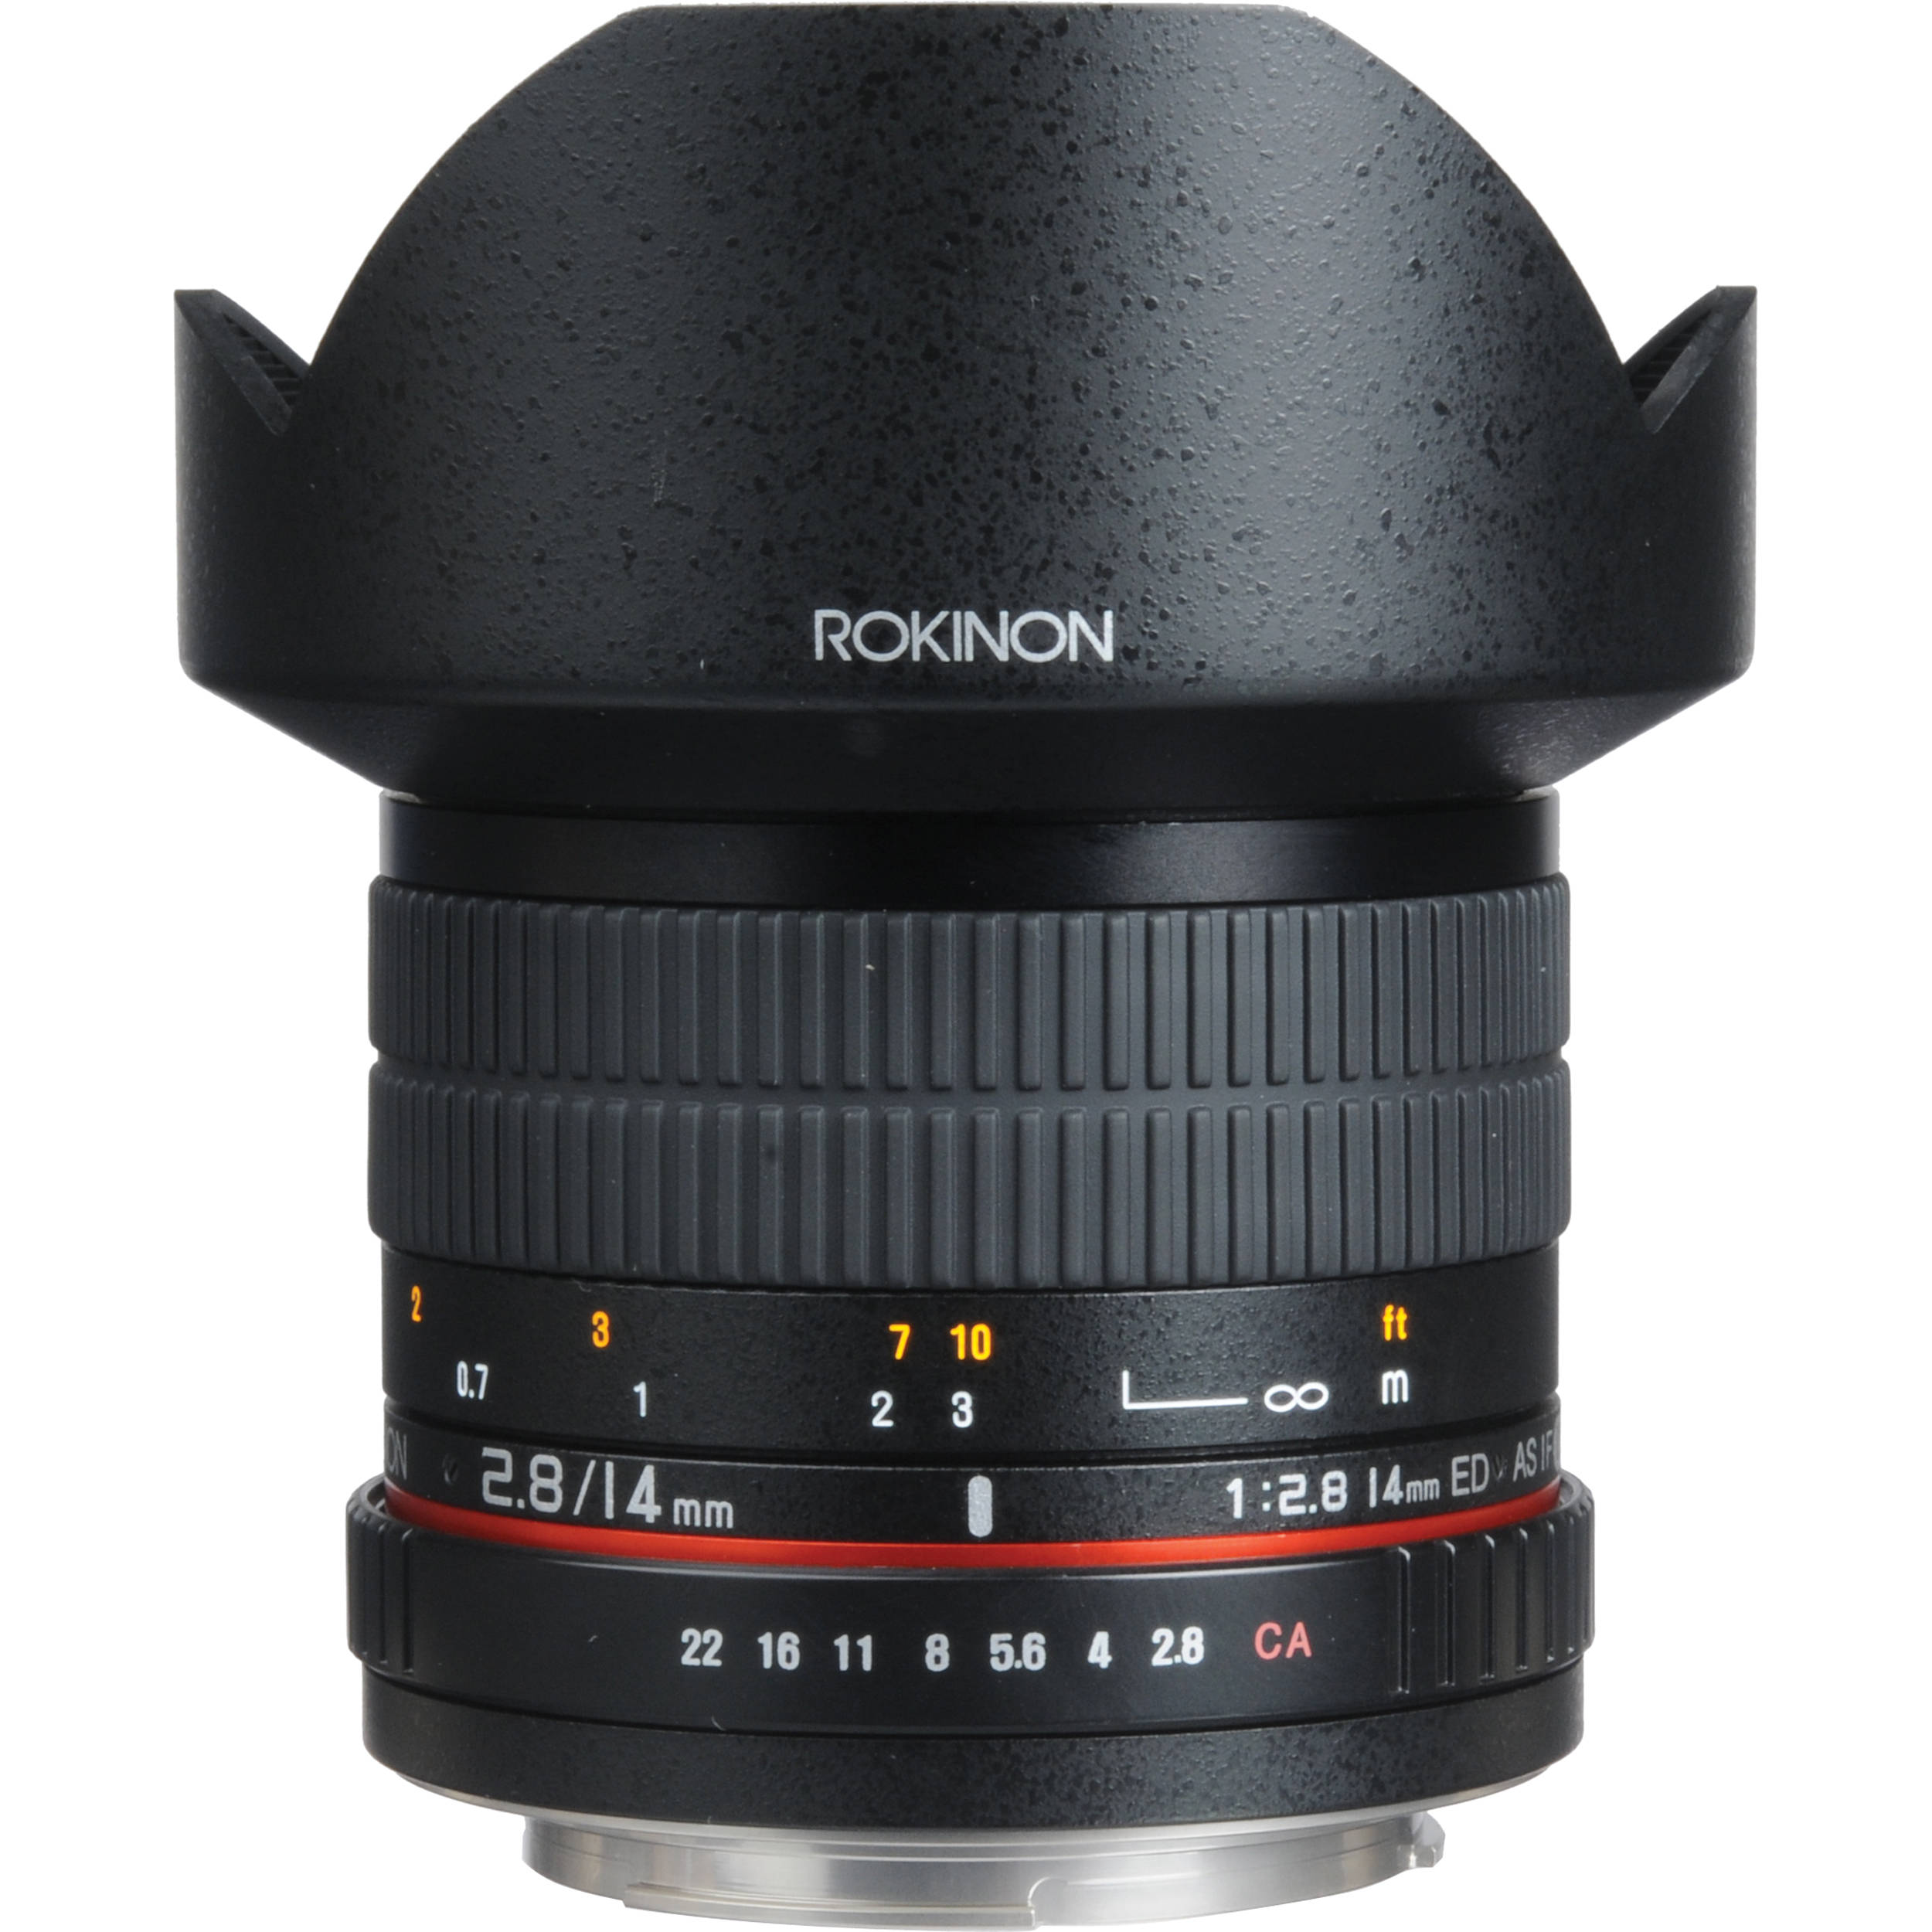 Rokinon 14mm f/2.8 IF ED UMC Lens For EF